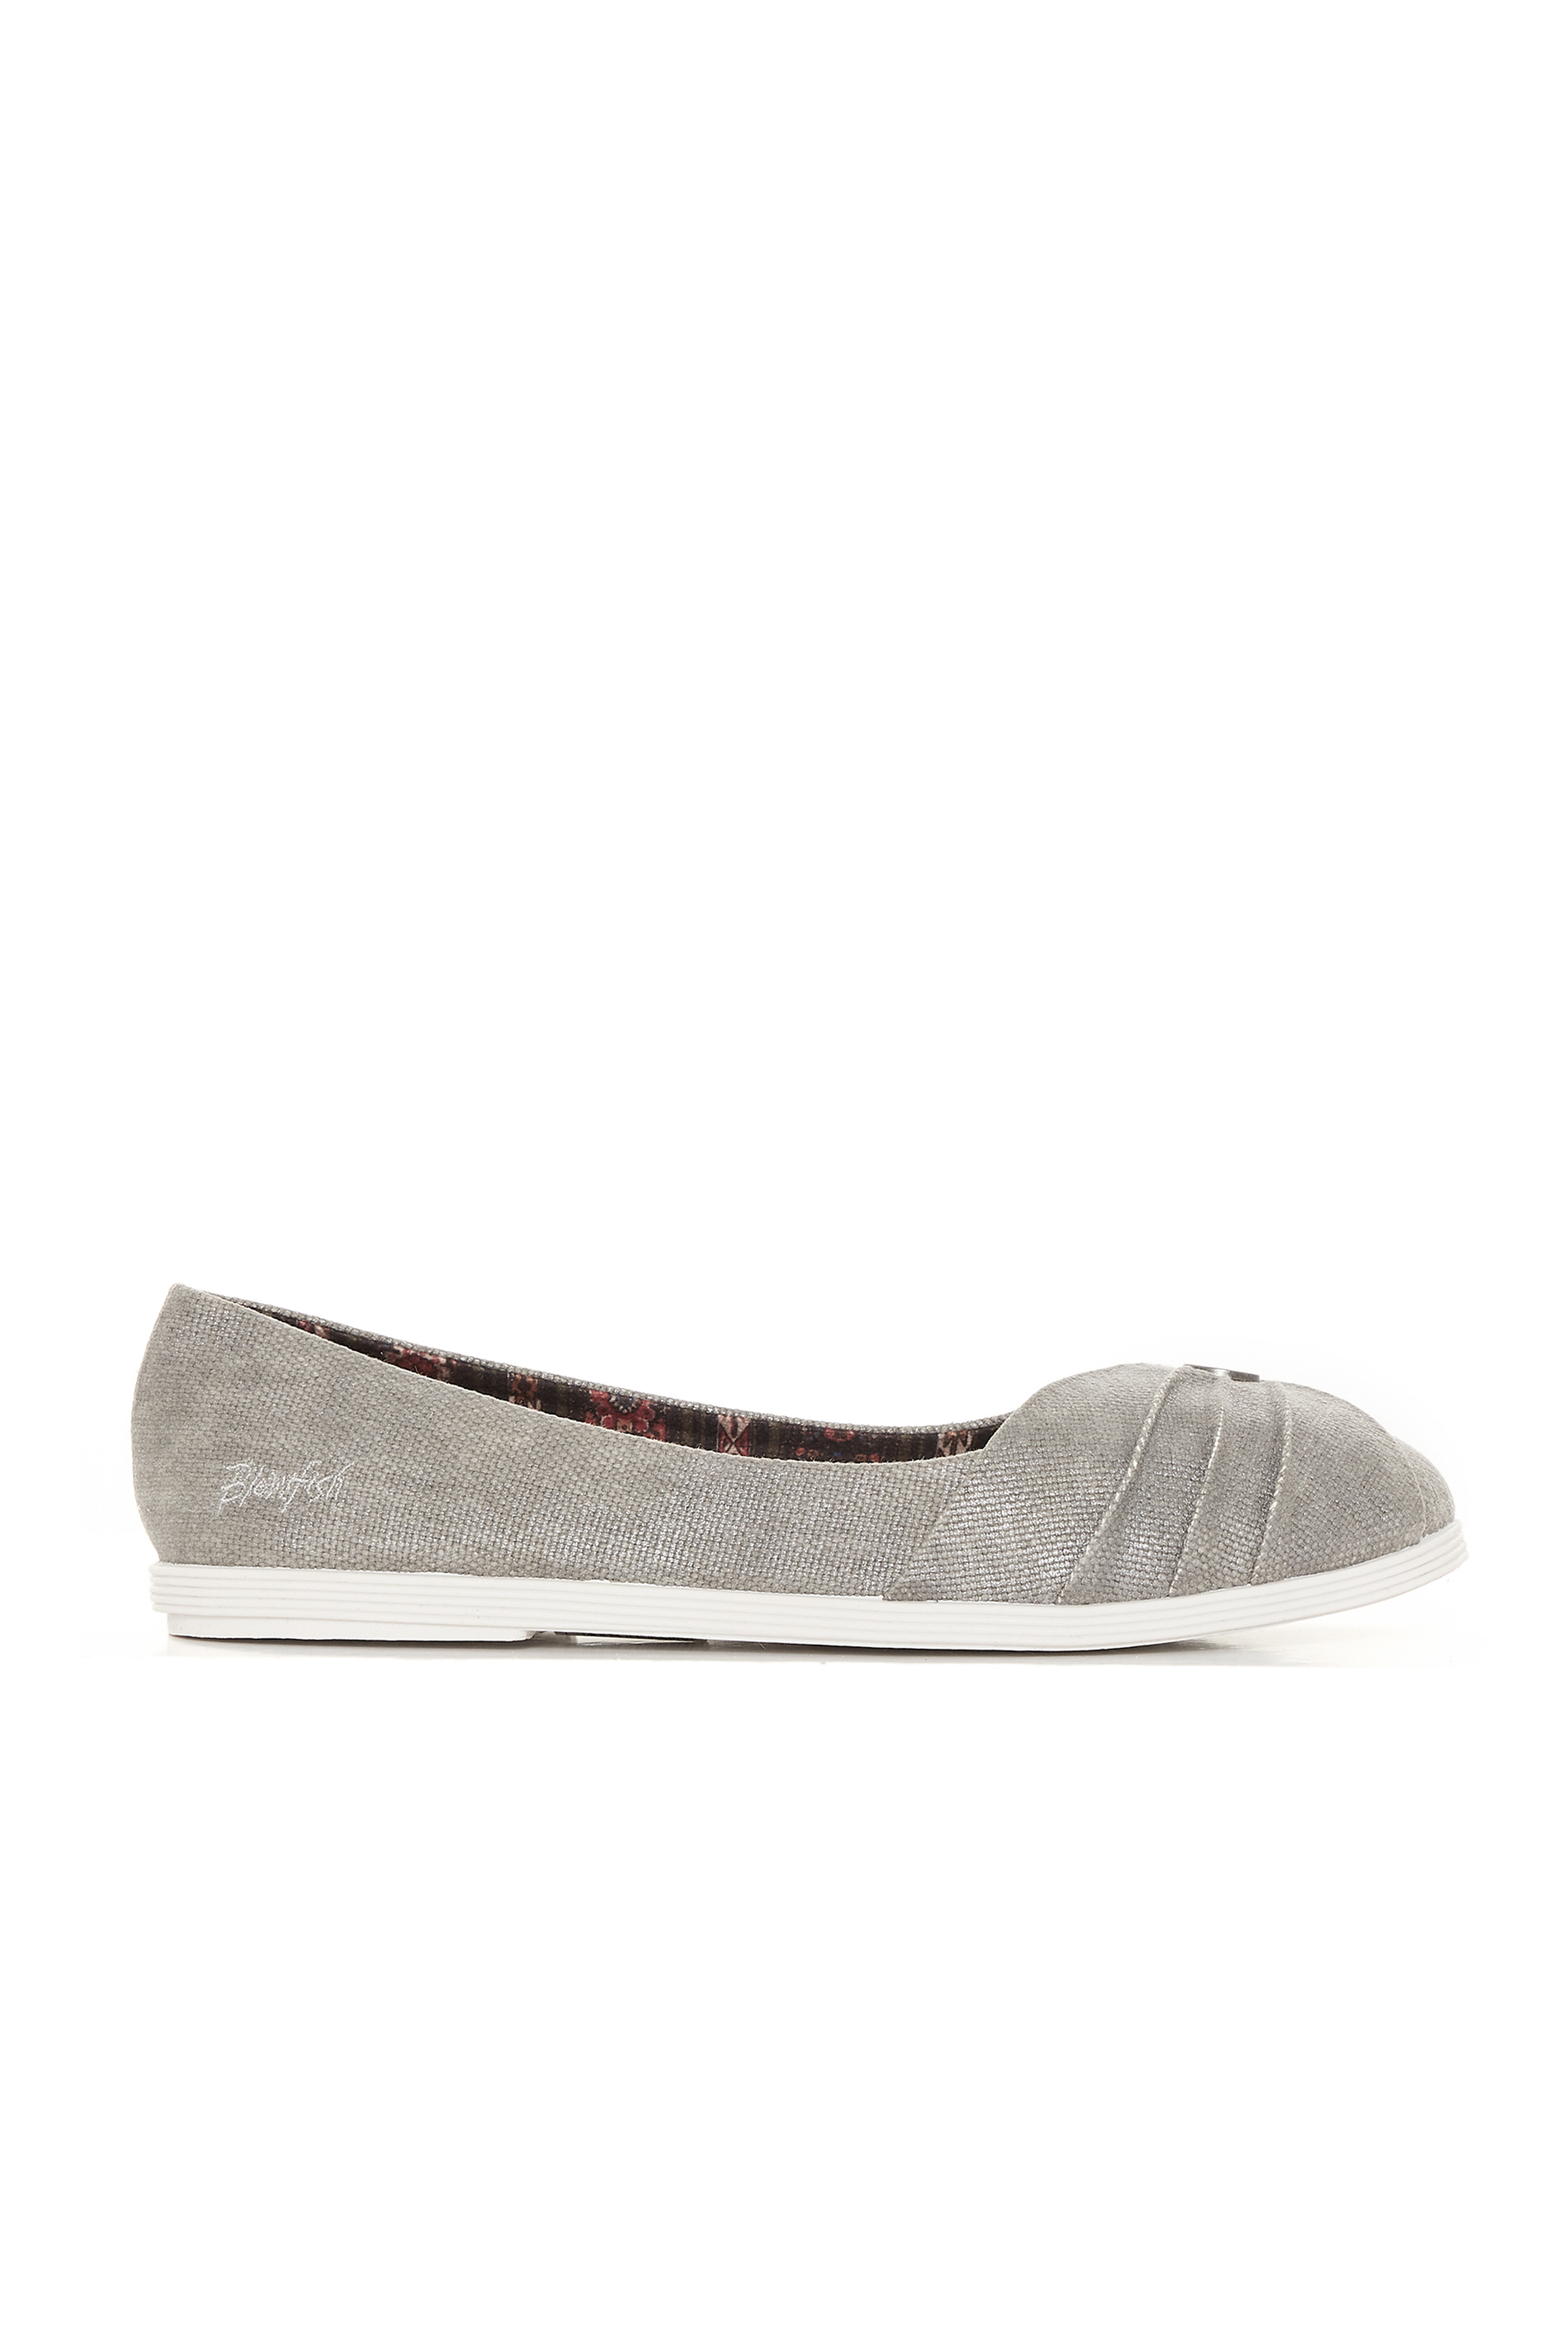 BLOWFISH Grey Galibu Flat Shoes